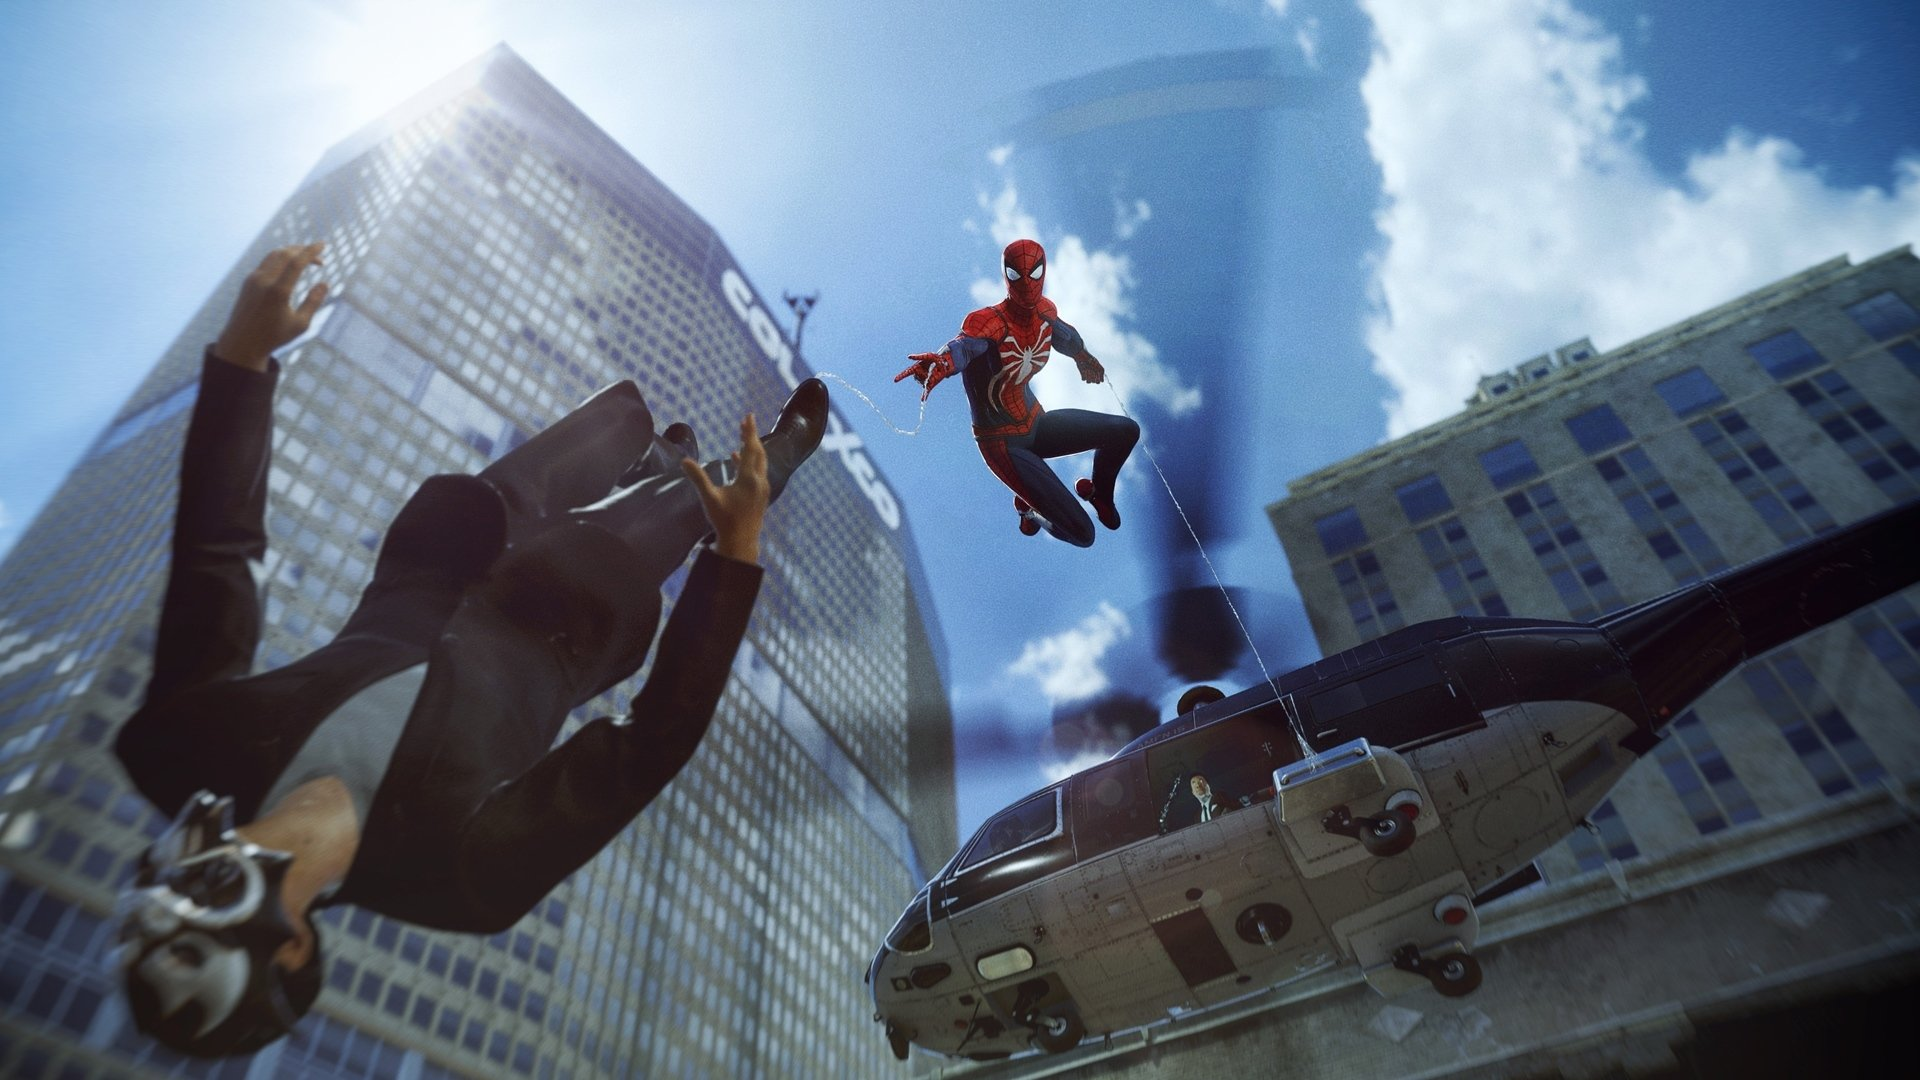 Game Of Spider Man Hd Wallpaper: Spider-Man Game HD Wallpapers 1920x1080